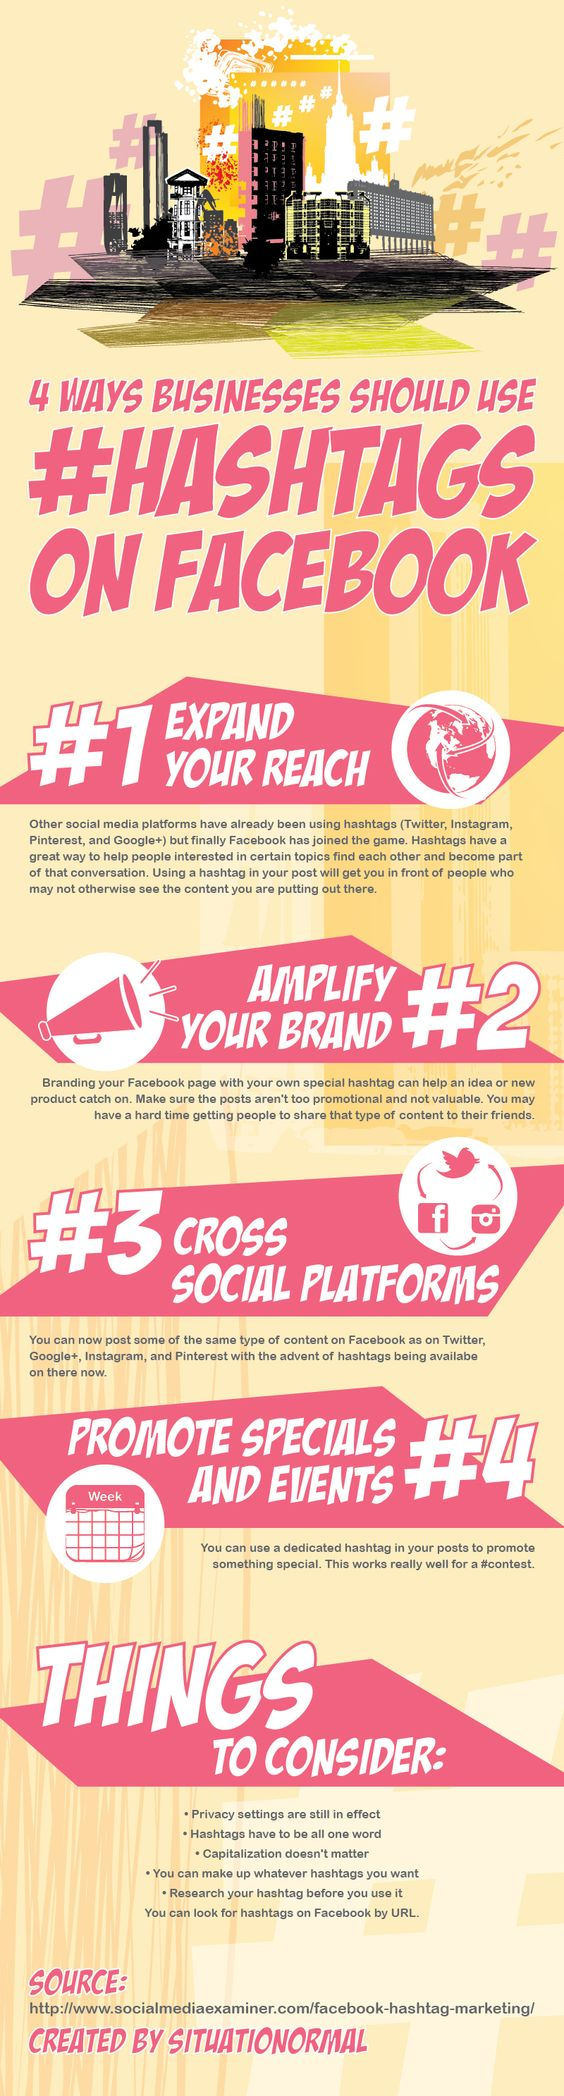 Four Ways Brands Can Use Facebook Hashtags - via SituatioNormal - Montclair NJ